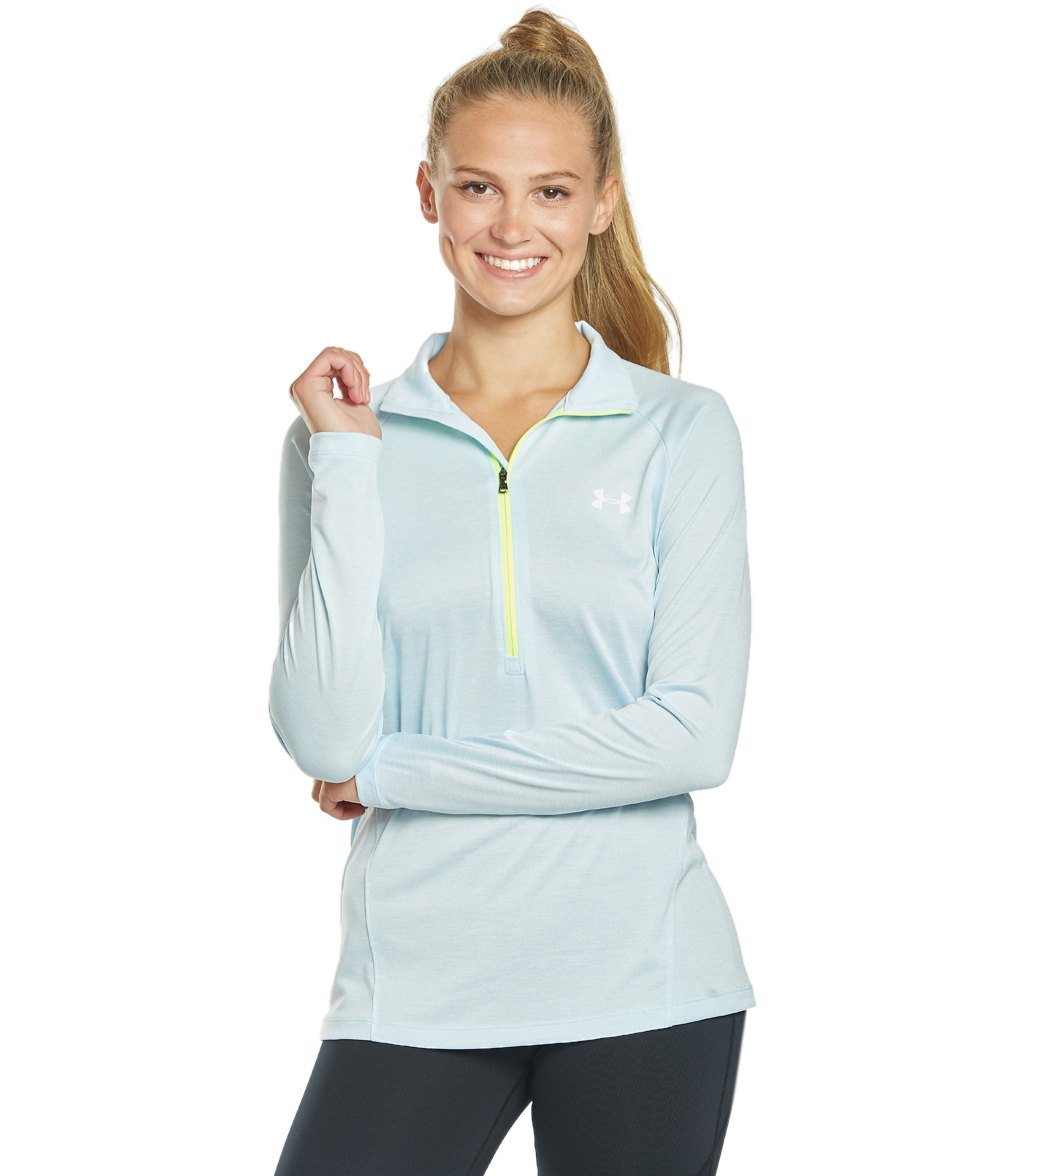 Stay warm during the breezy nights when you workout with the Under Armour Women\\\'s UA Tech Half Zip. FeaturesFitted: Next-to-skin without the squeeze. UA Tech(TM) fabric is quick-drying, ultra-soft & has a more natural feel Material wicks sweat & dries really fast 4-way stretch construction moves better in every direction Anti-odor technology prevents the growth of odor-causing microbes 1/2 zip front with stand collar for extra coverage Raglan sleeves Drop-tail hem offers superior back coverage R